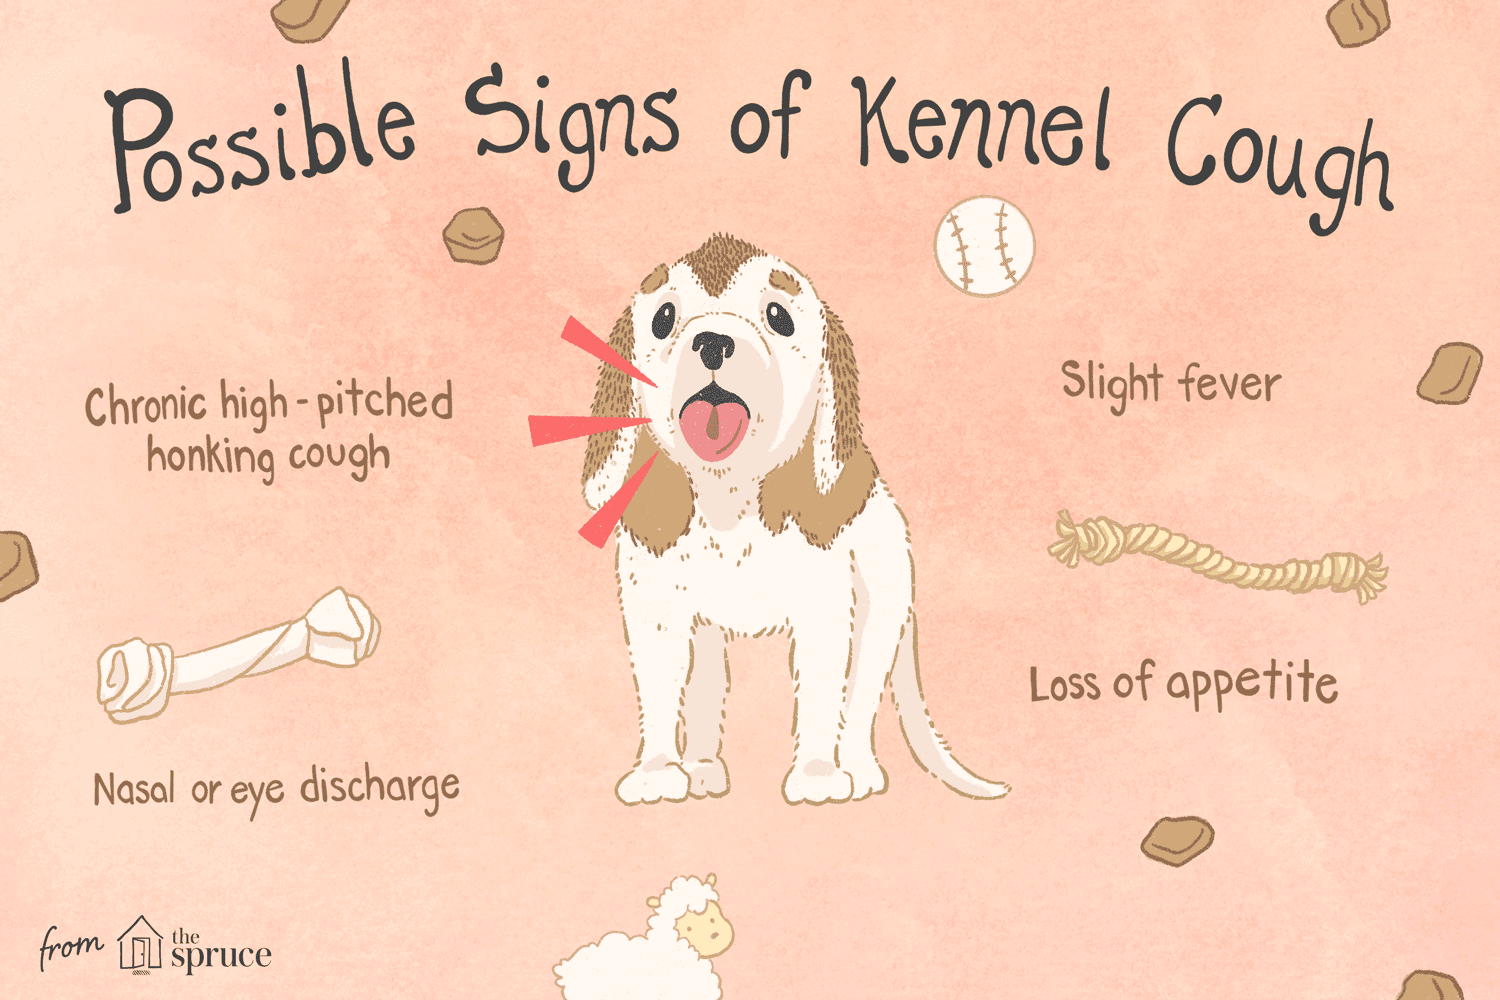 What Is Kennel Cough in Dogs and How Do Dogs Get Kennel Cough?